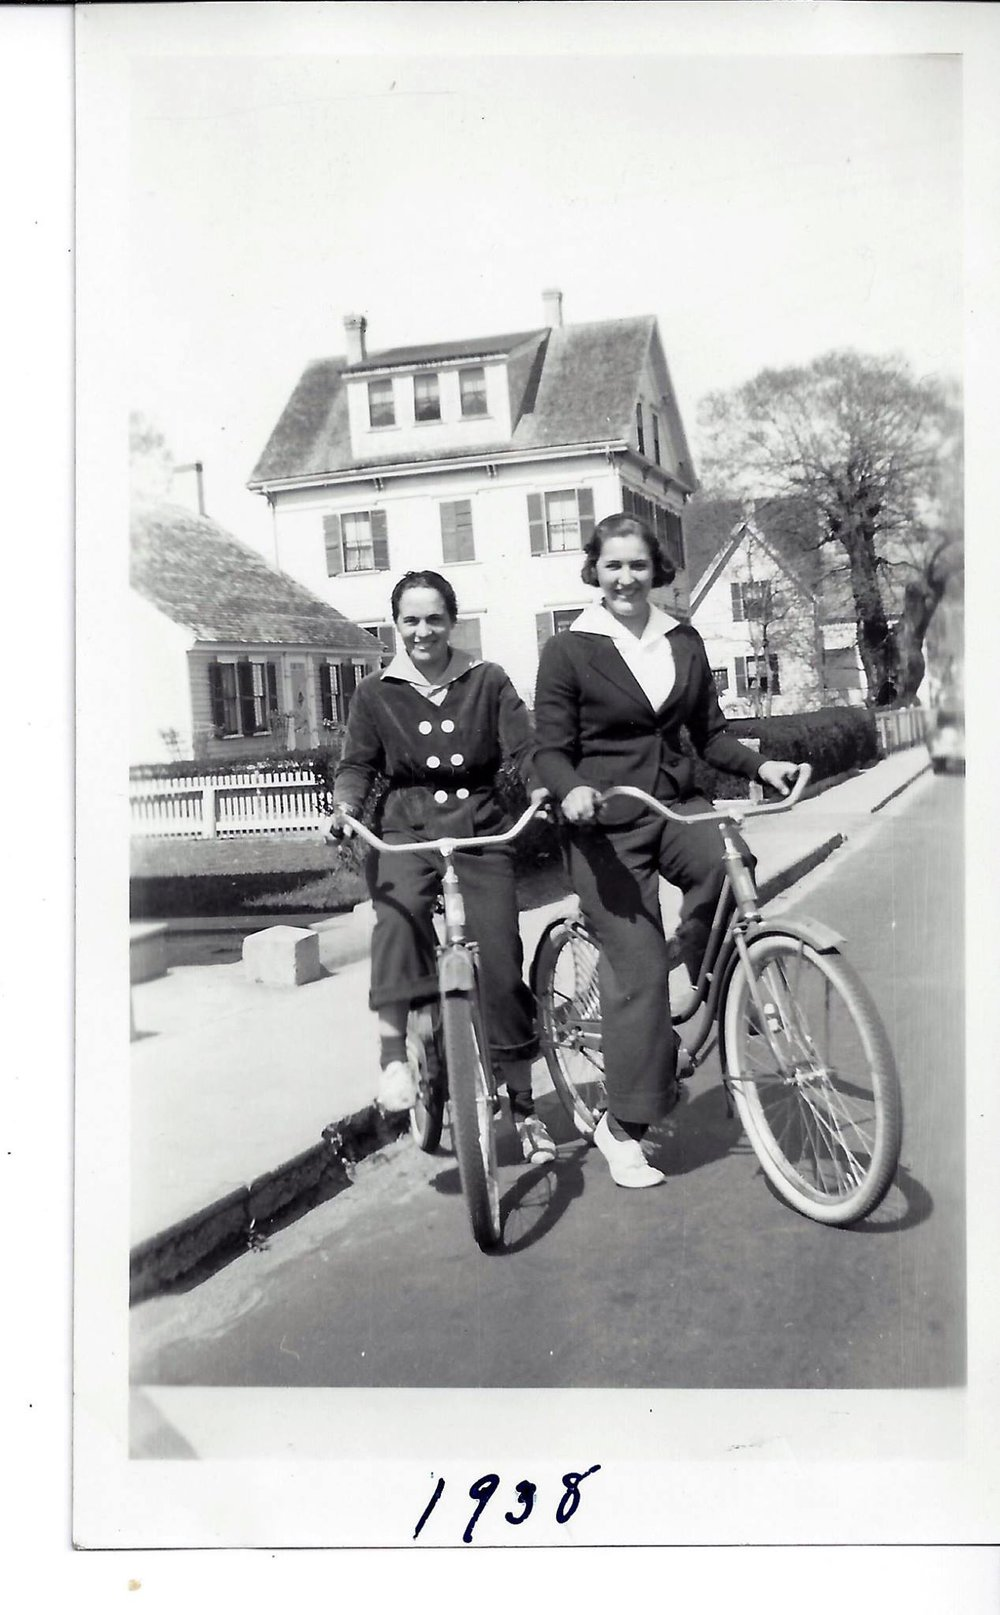 """My mother, Marguerite and my aunt Marion Henrique Thomas on their bicycles in the vicinity of Lovetts Court and Commercial Street, Provincetown 1938"" - Salvador Vasques"